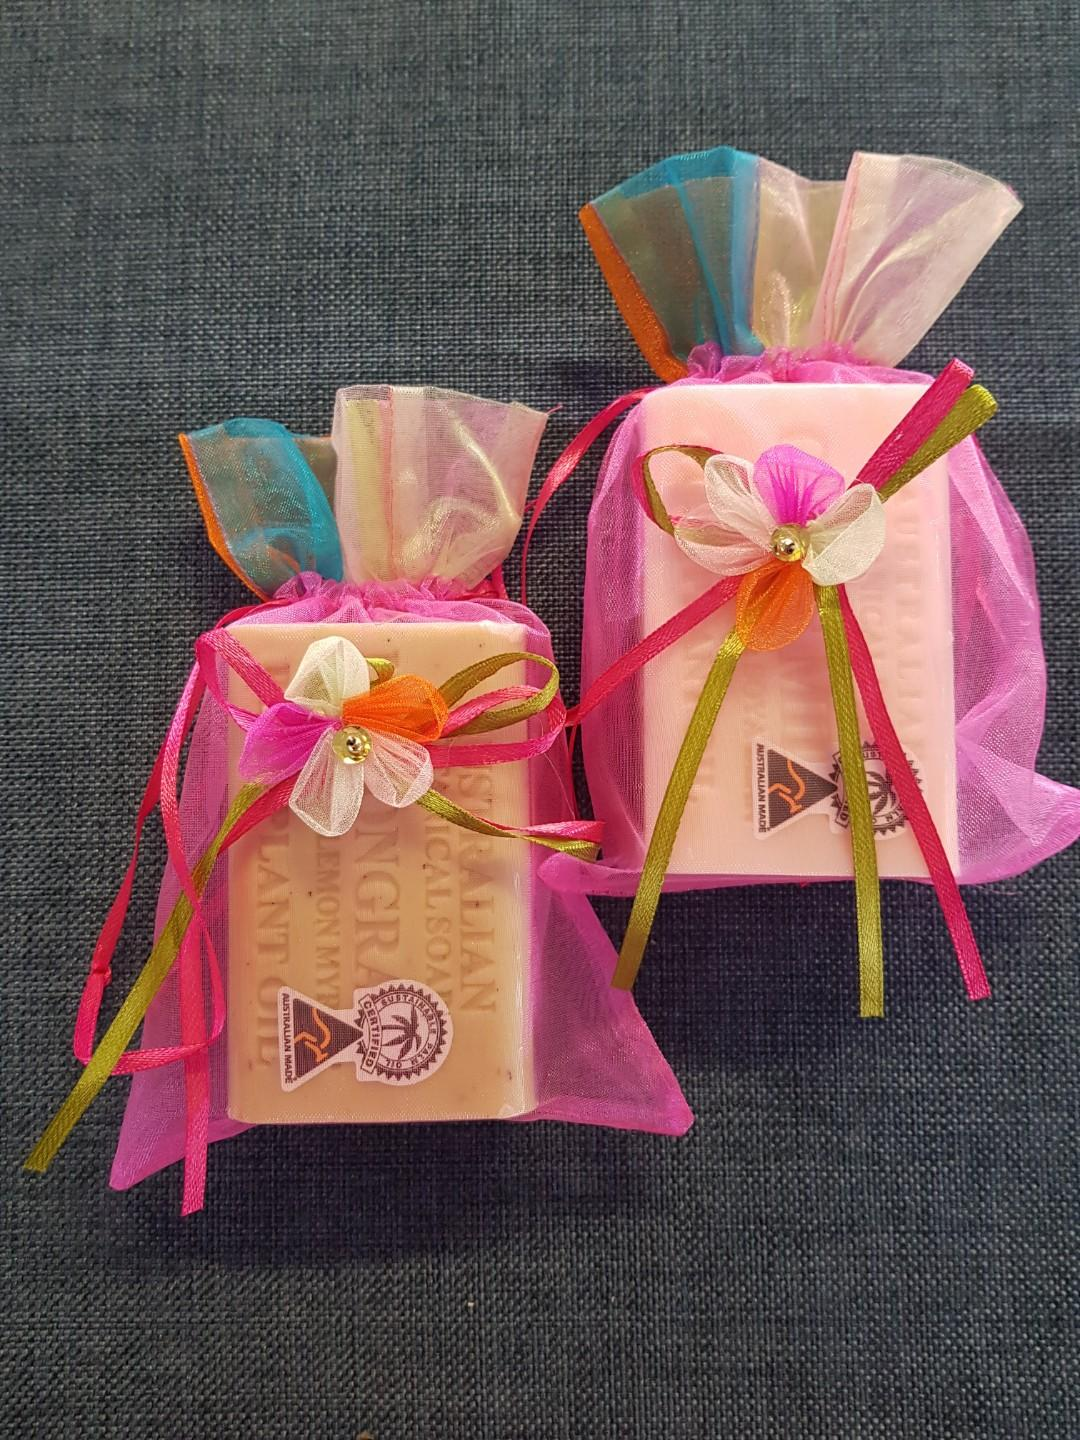 2 x 200g soaps in organza bags (only 2 left)(PRICE IS EA)